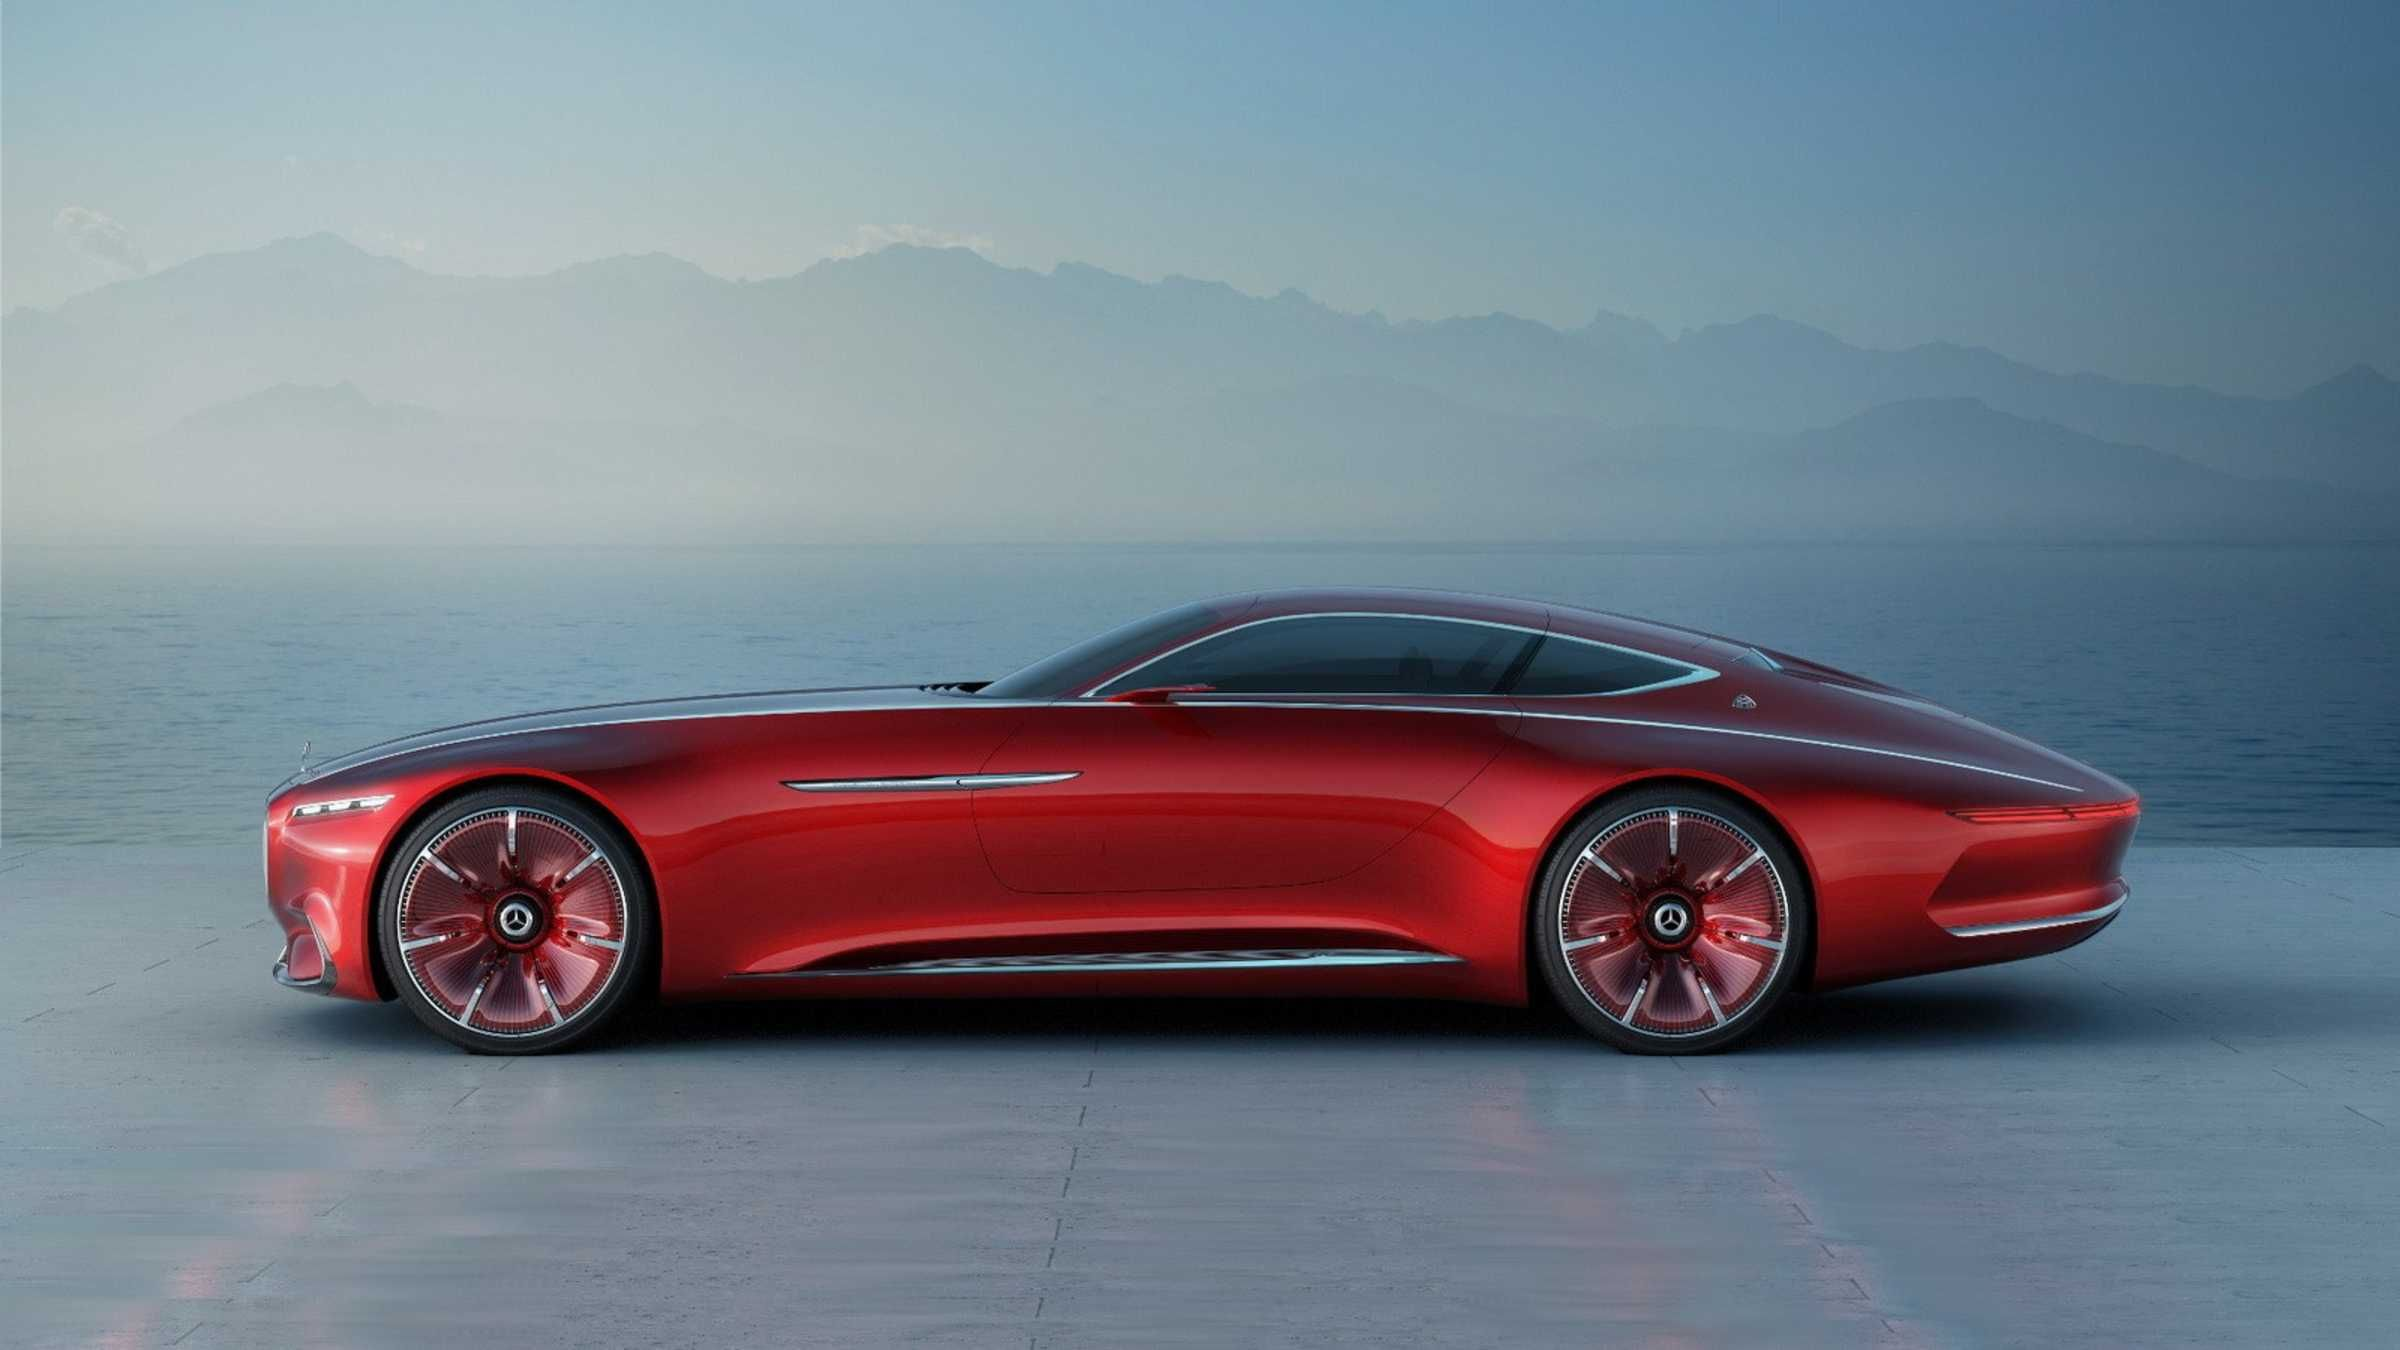 The Vision Mercedes Maybach 6 Concept Is Revealed Ahead of Pebble 2400x1350